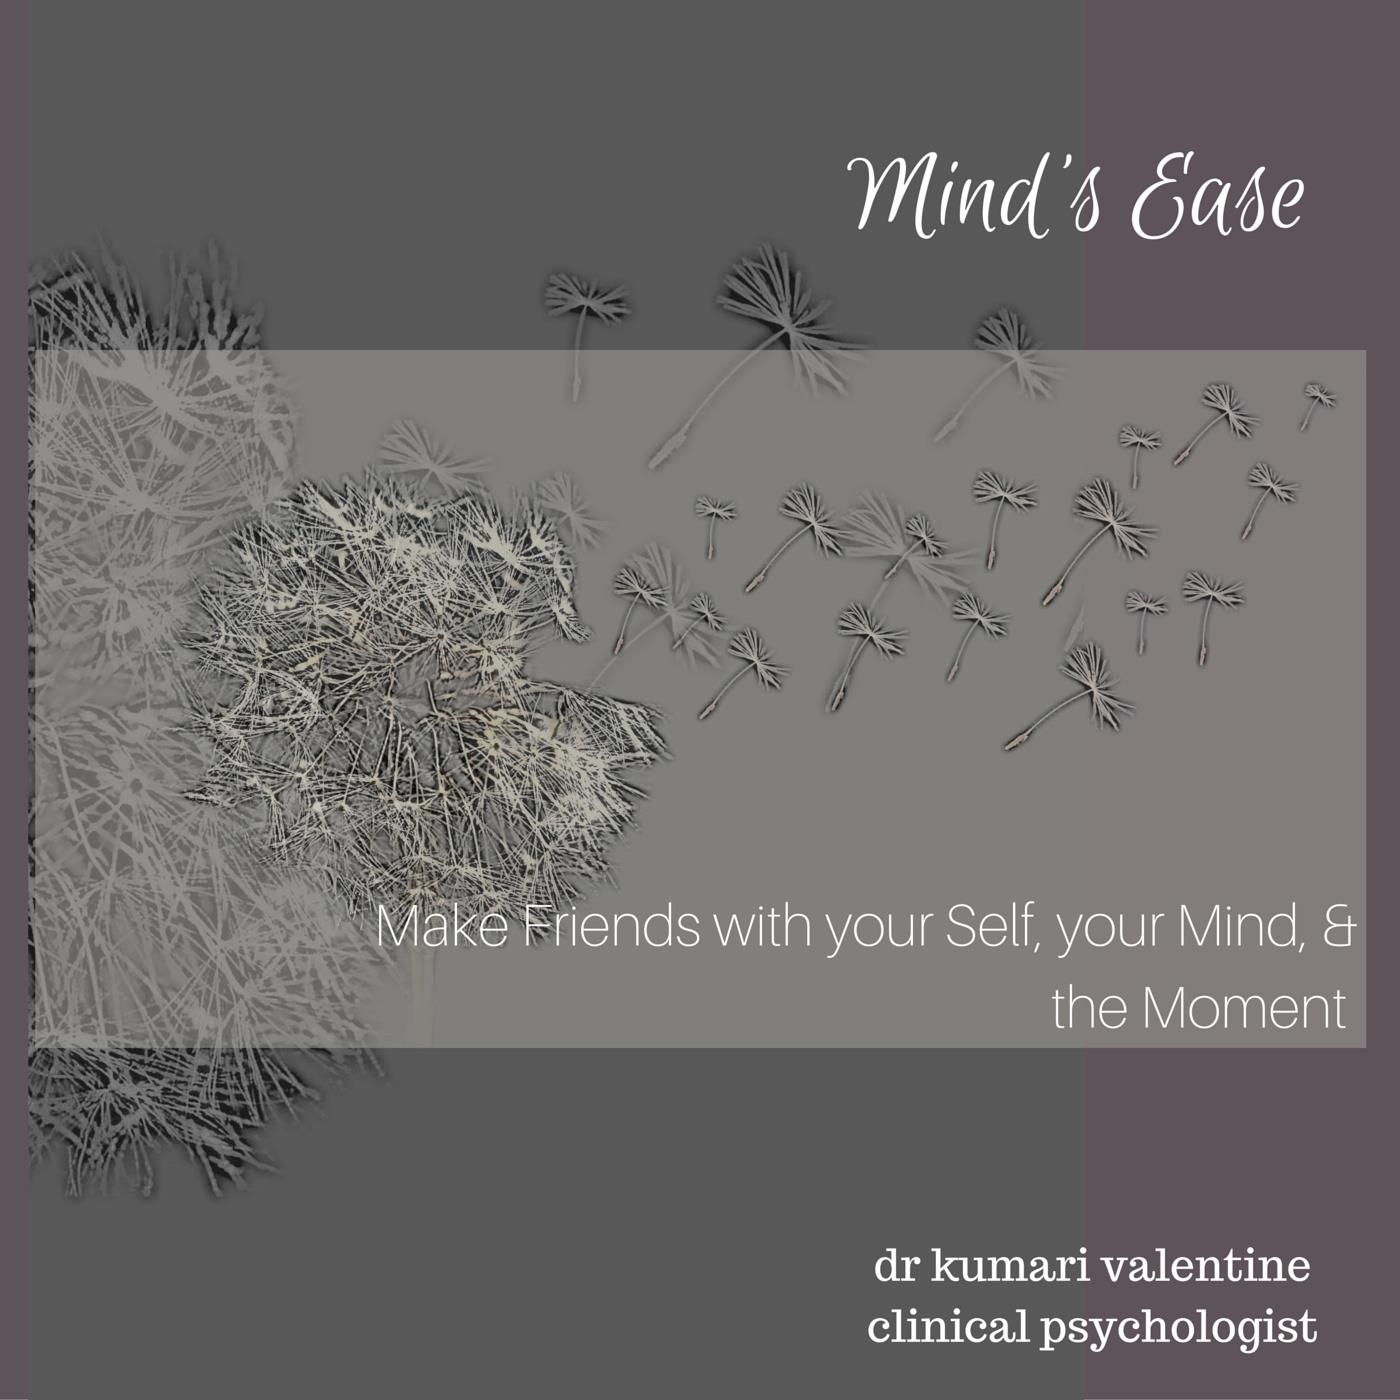 Mind's Ease – Make friends with your Self, your Mind, and the Moment CD OUT SOON